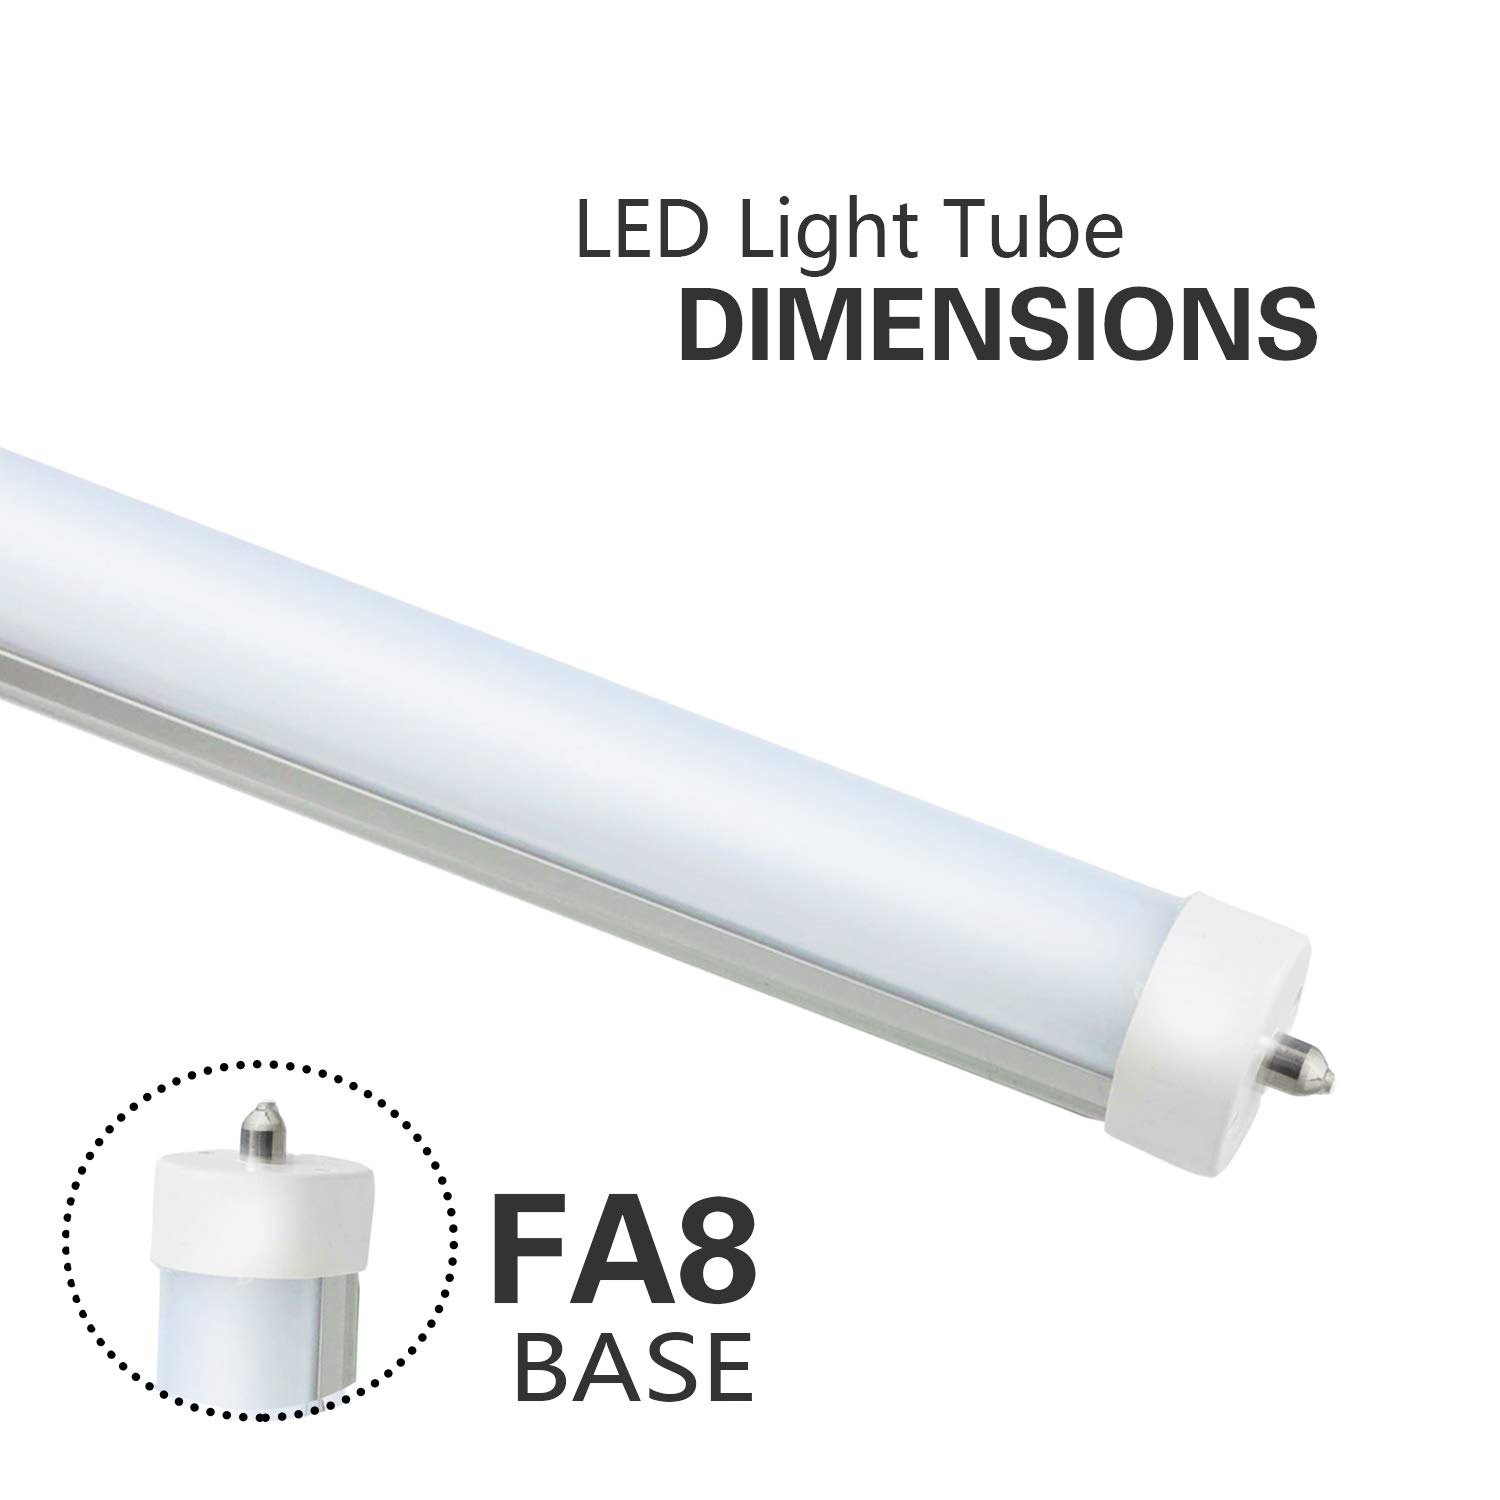 8ft Led Bulbs For T12 Fluorescent Fixtures F96t12 Tube Light Diagram Although Lights Replacement 120v And 277v Input 5500k Daylight White 40watt 4800lm Super Bright 4pcs